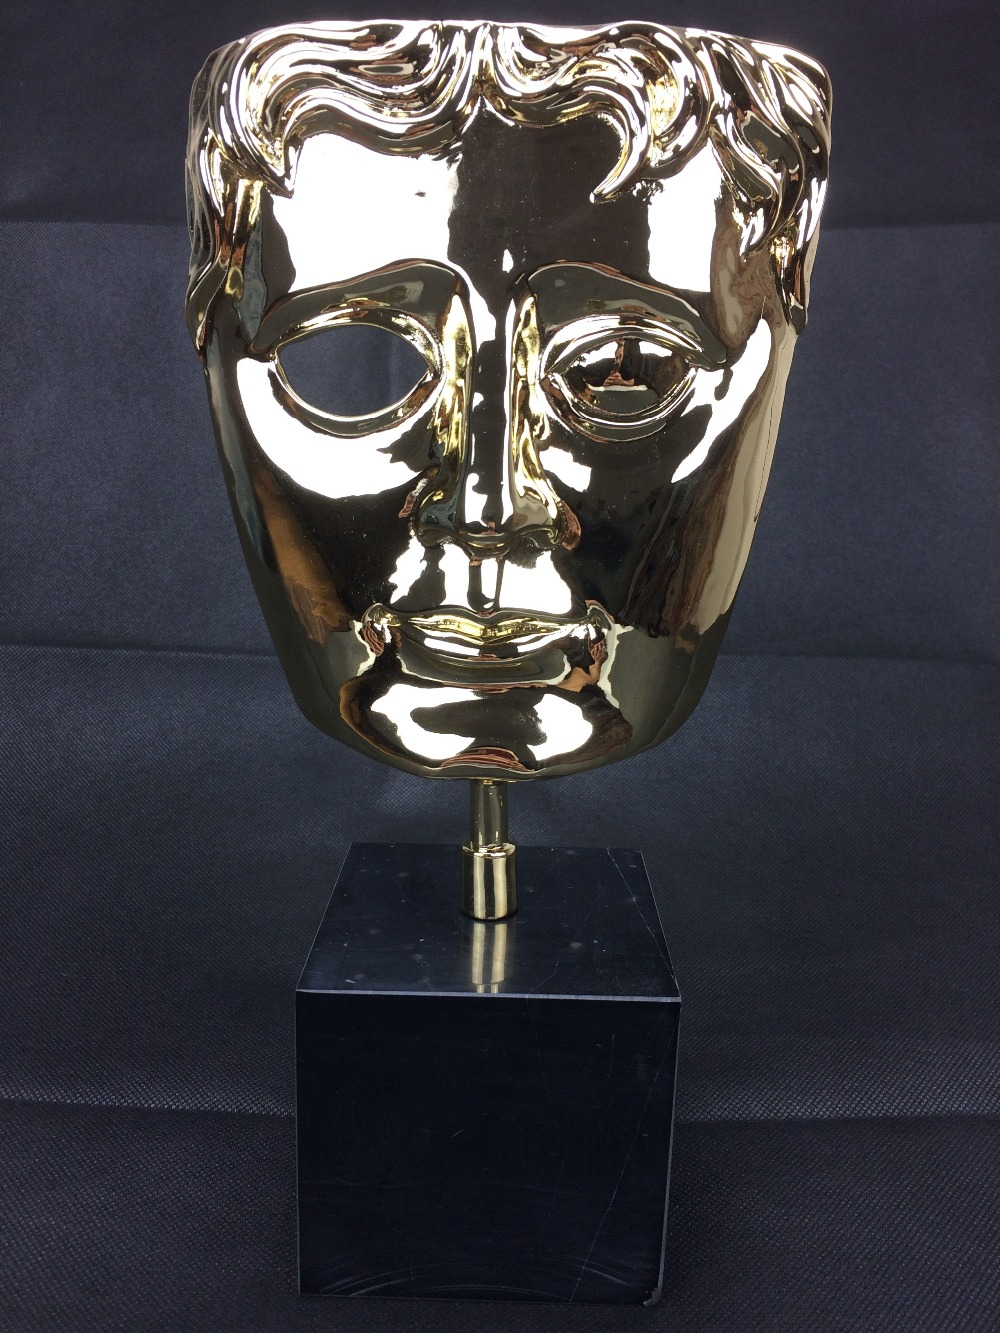 BAFTA Awards, Metal replika BAFTA Awards, Britanska akademija za filmske nagrade